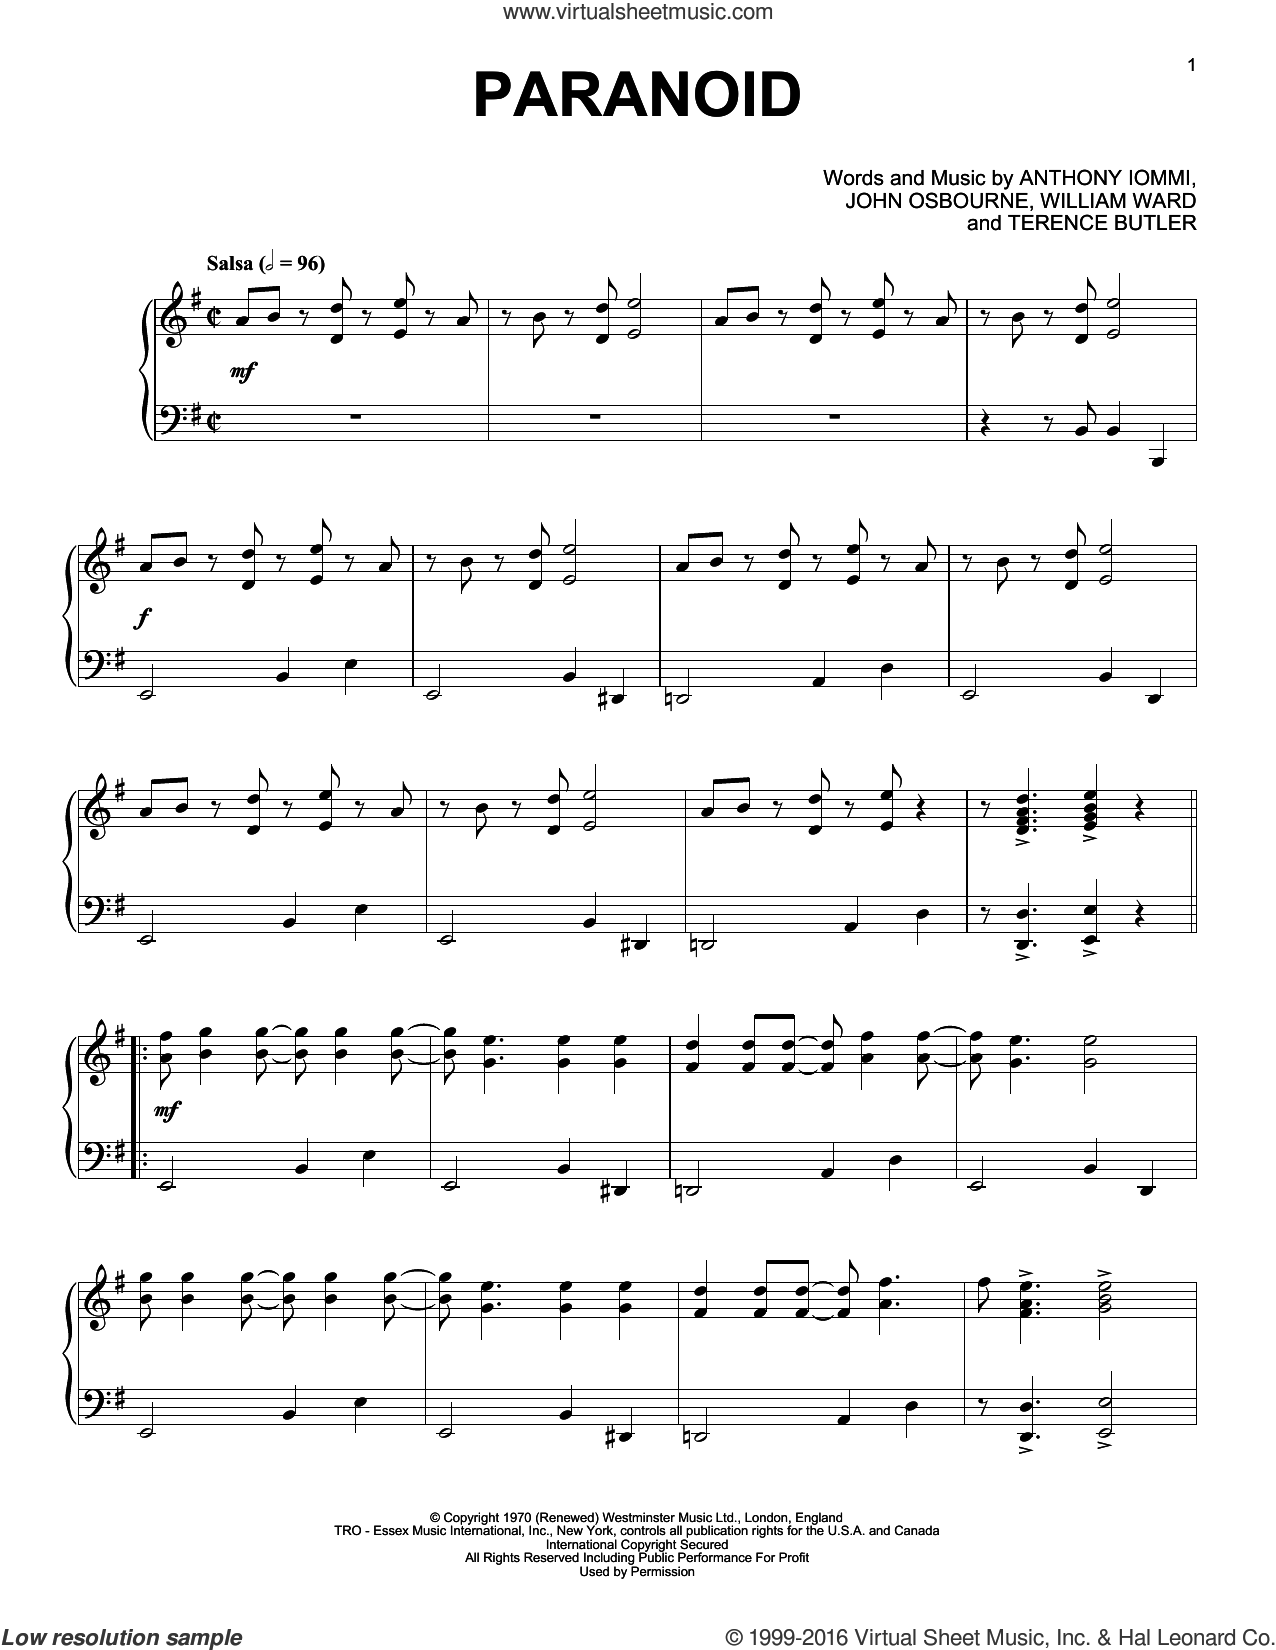 Paranoid sheet music for piano solo by Black Sabbath, Ozzy Osbourne, Anthony Iommi, John Osbourne, Terence Butler and William Ward, intermediate skill level